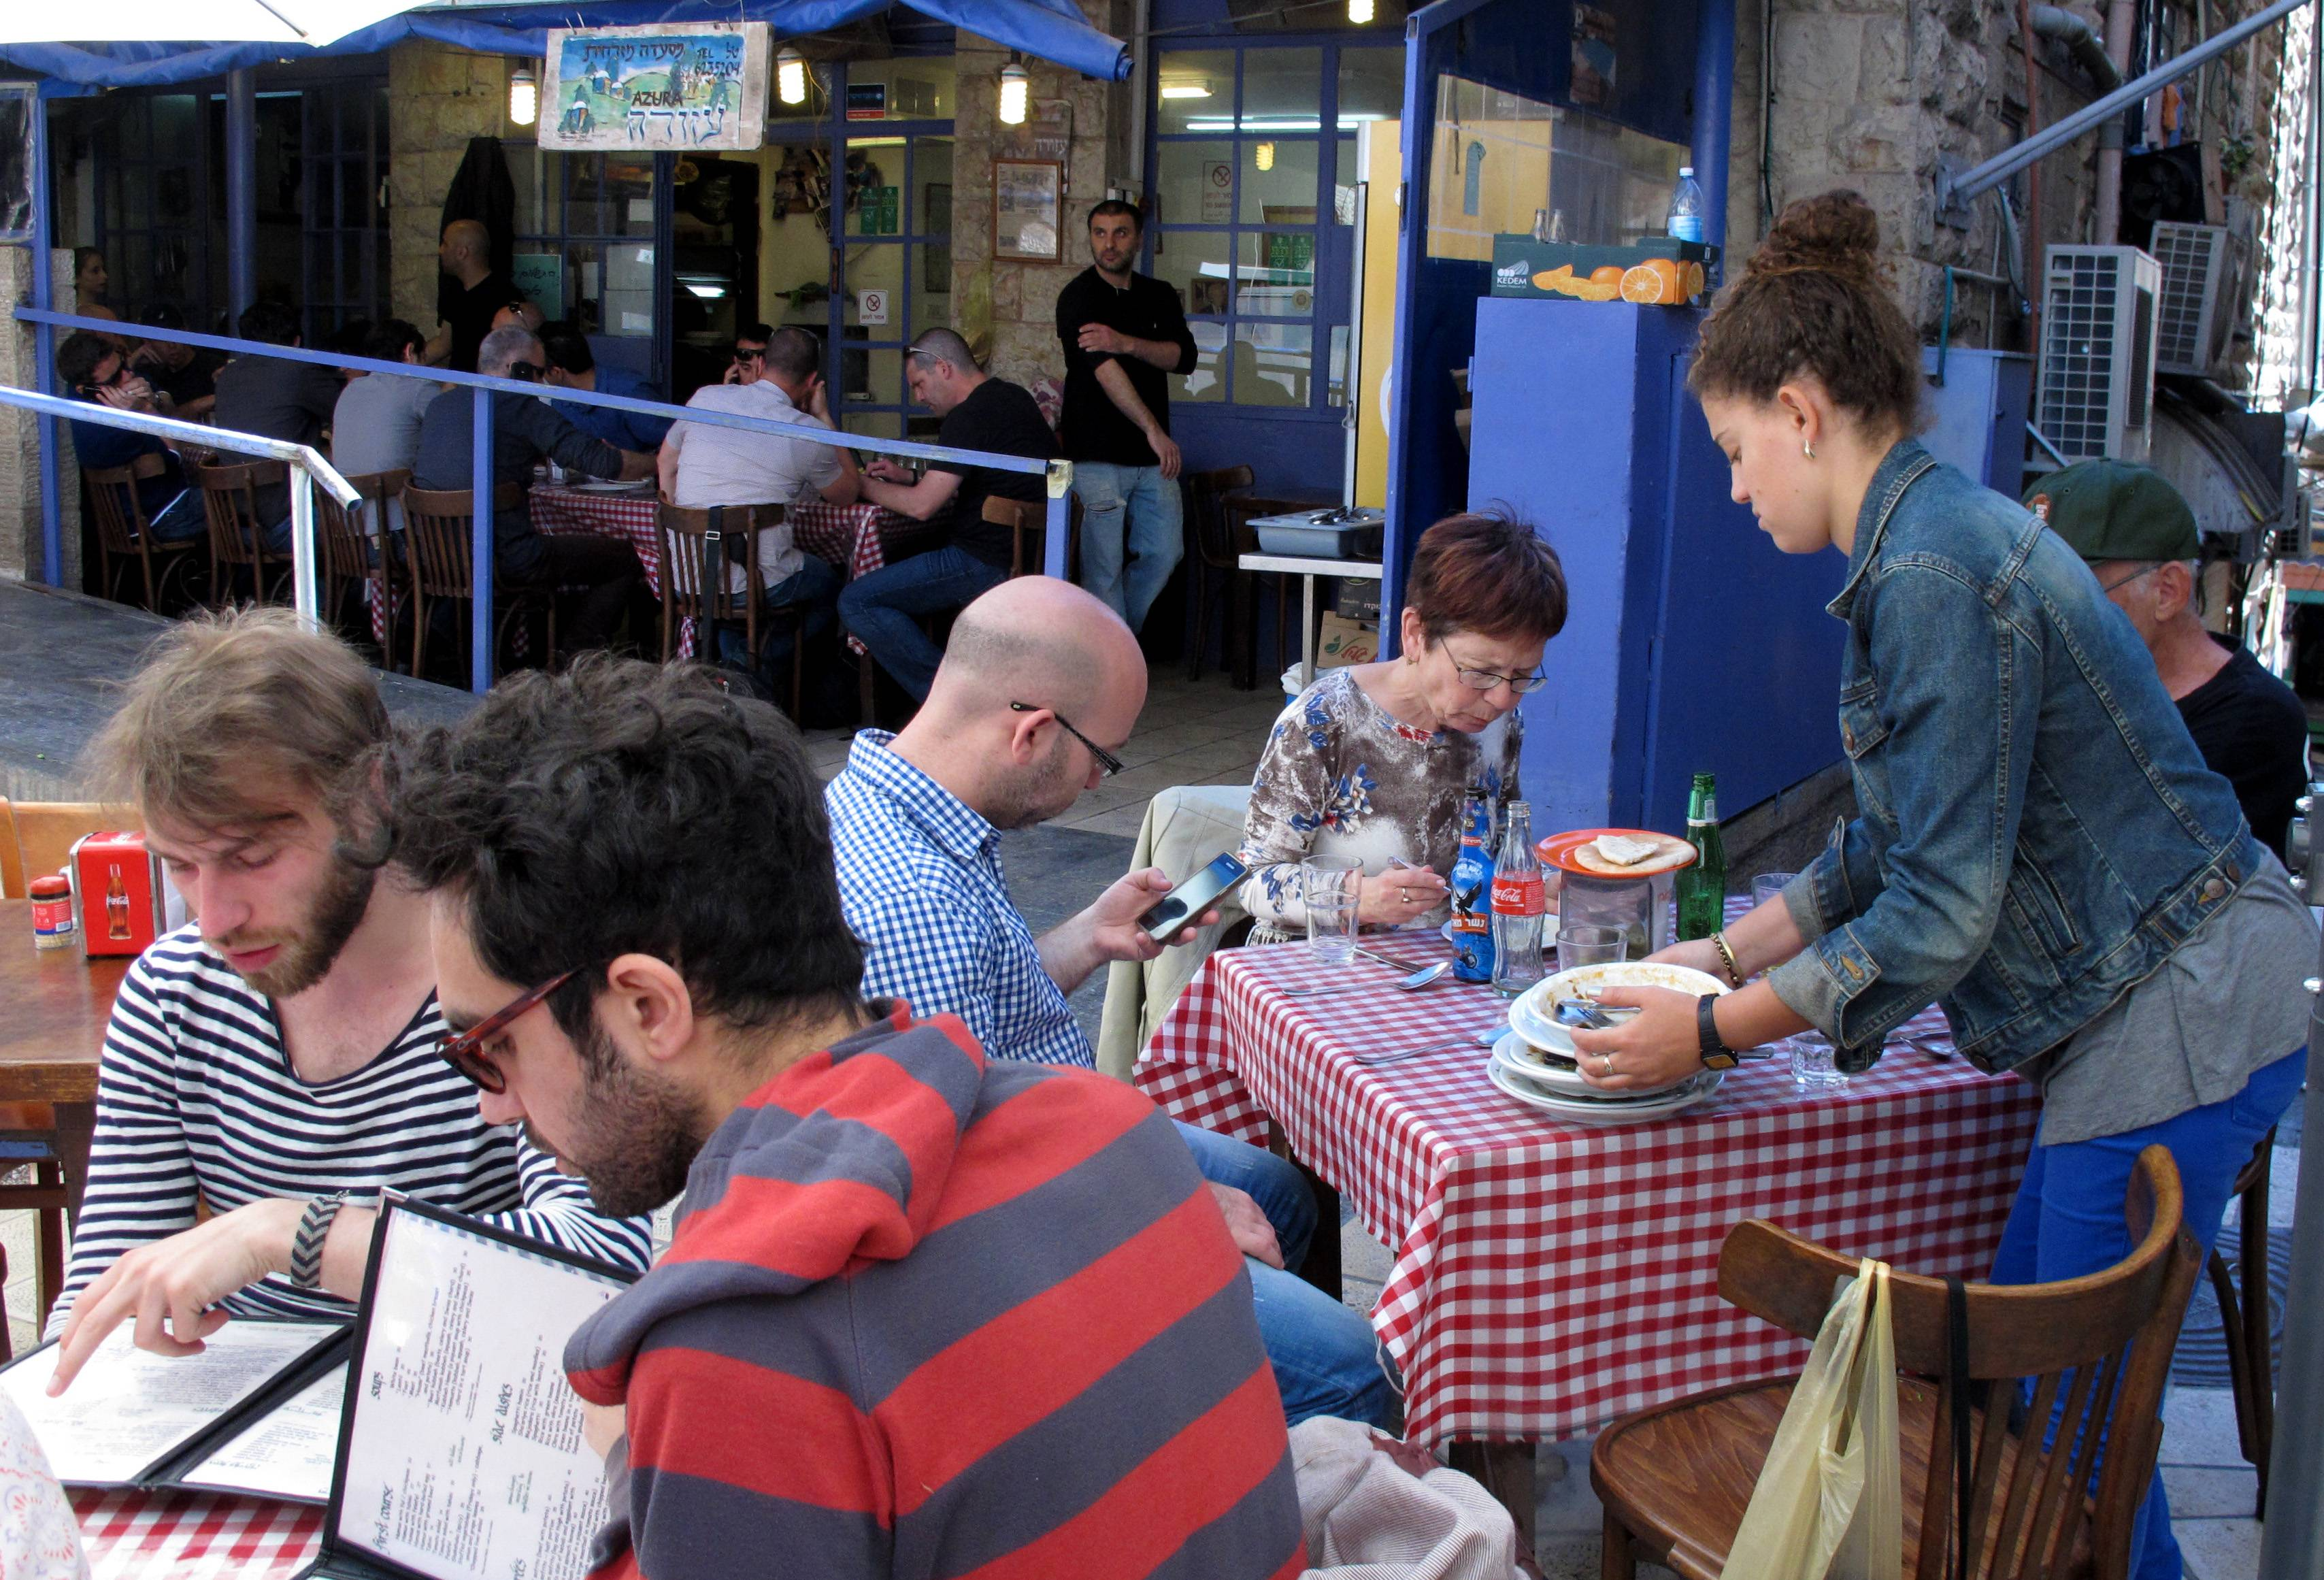 Diners enjoy a meal at the Azura restaurant in Jerusalem's Mahane Yehuda market. The family-run institution is famous for its Turkish-inspired delicacies that are slow-cooked to perfection atop kerosene burners.